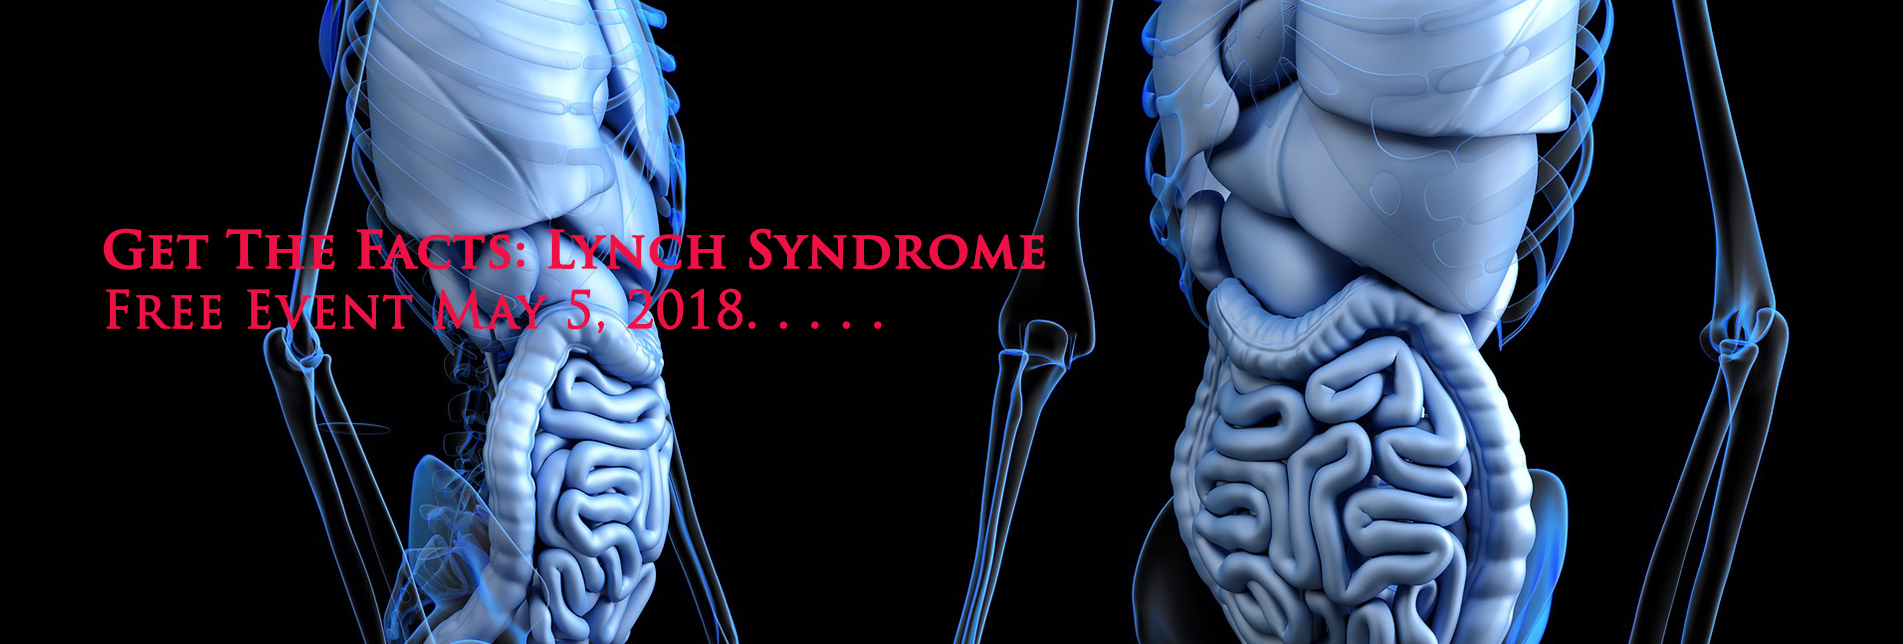 Lynch Syndrome: Get the Facts May 5, 2018!